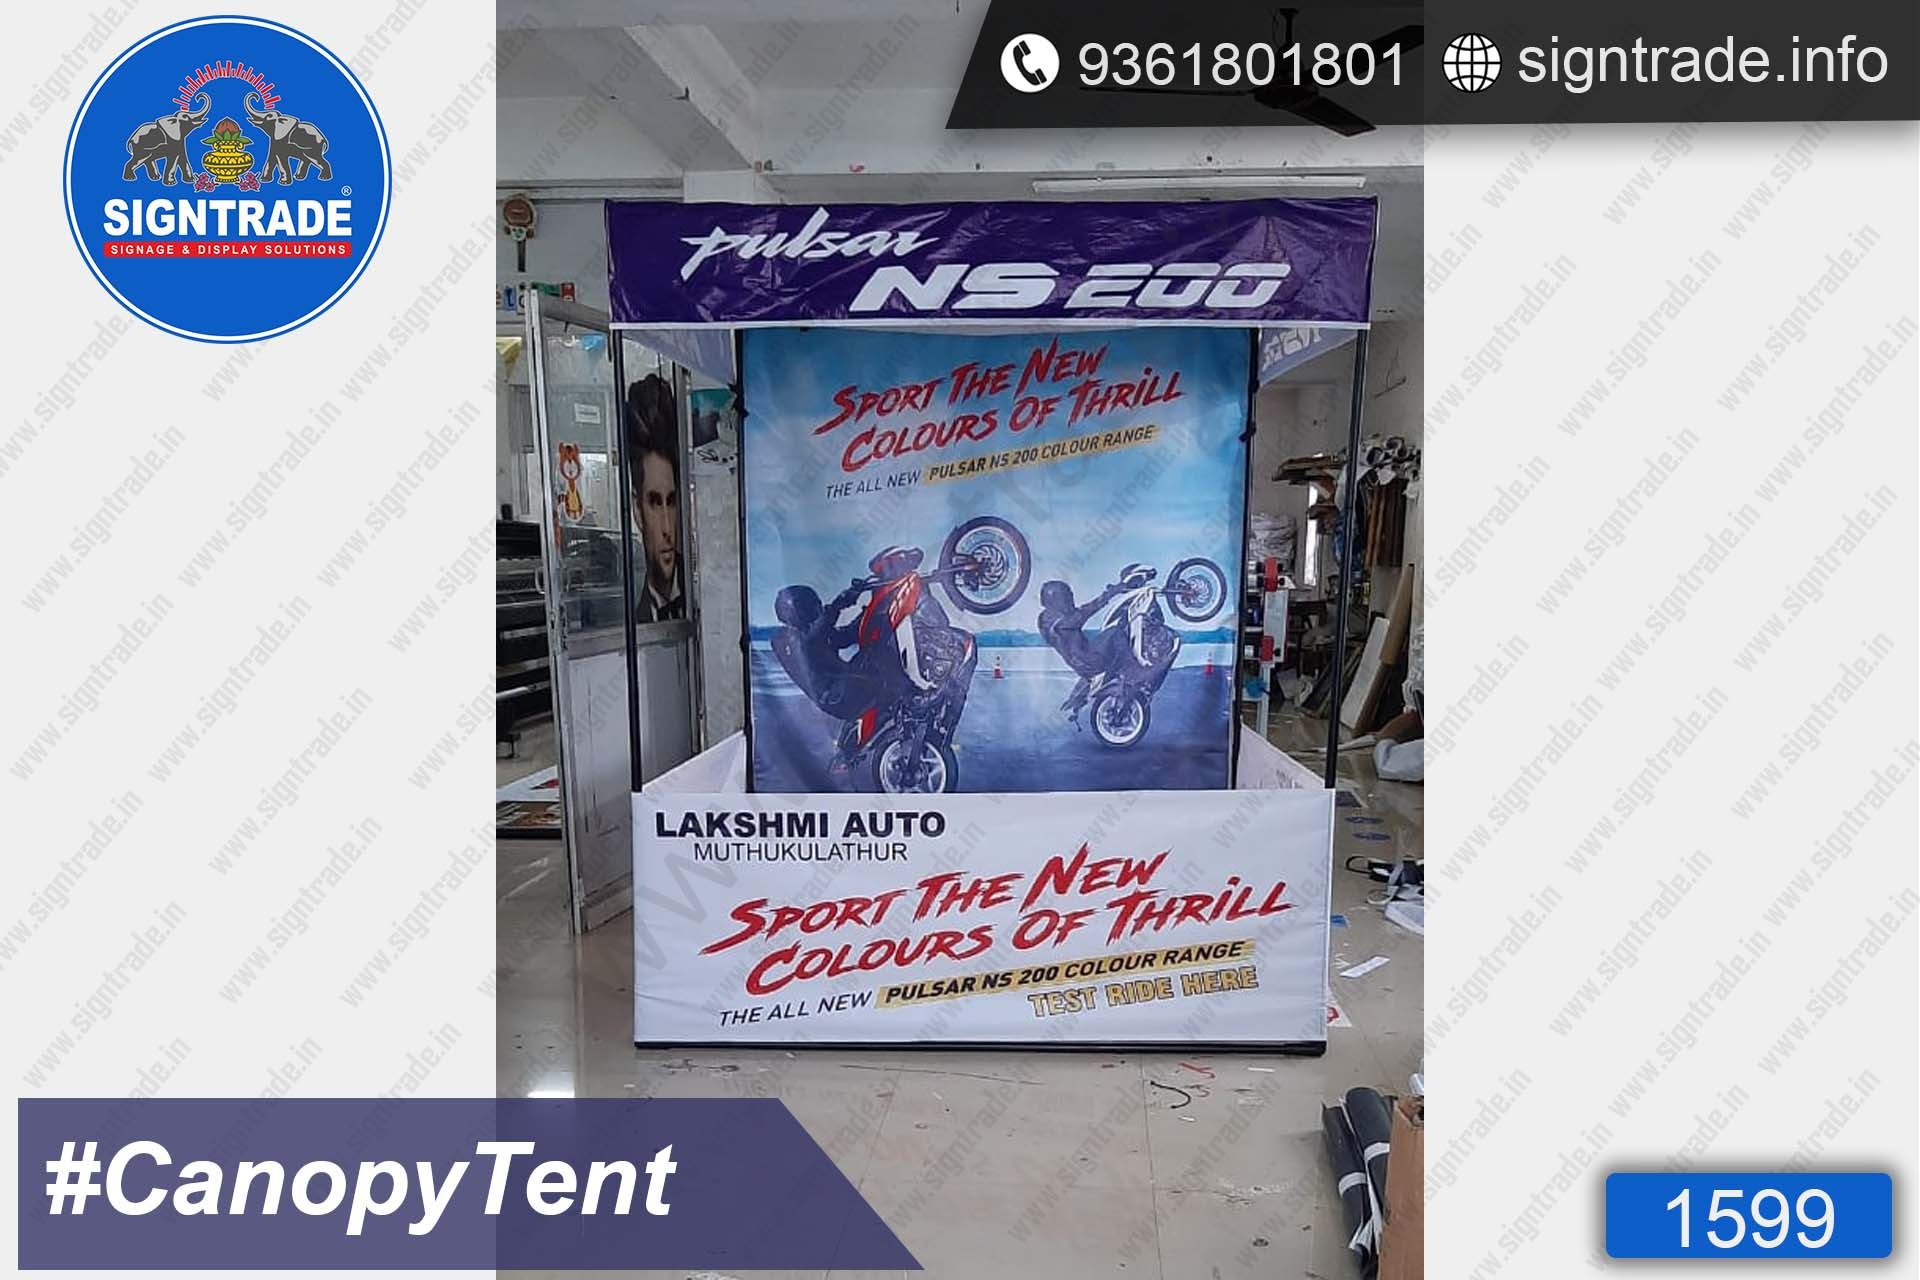 Lakshmi Auto - SIGNTRADE - Canopy Tent Manufactures in Chennai